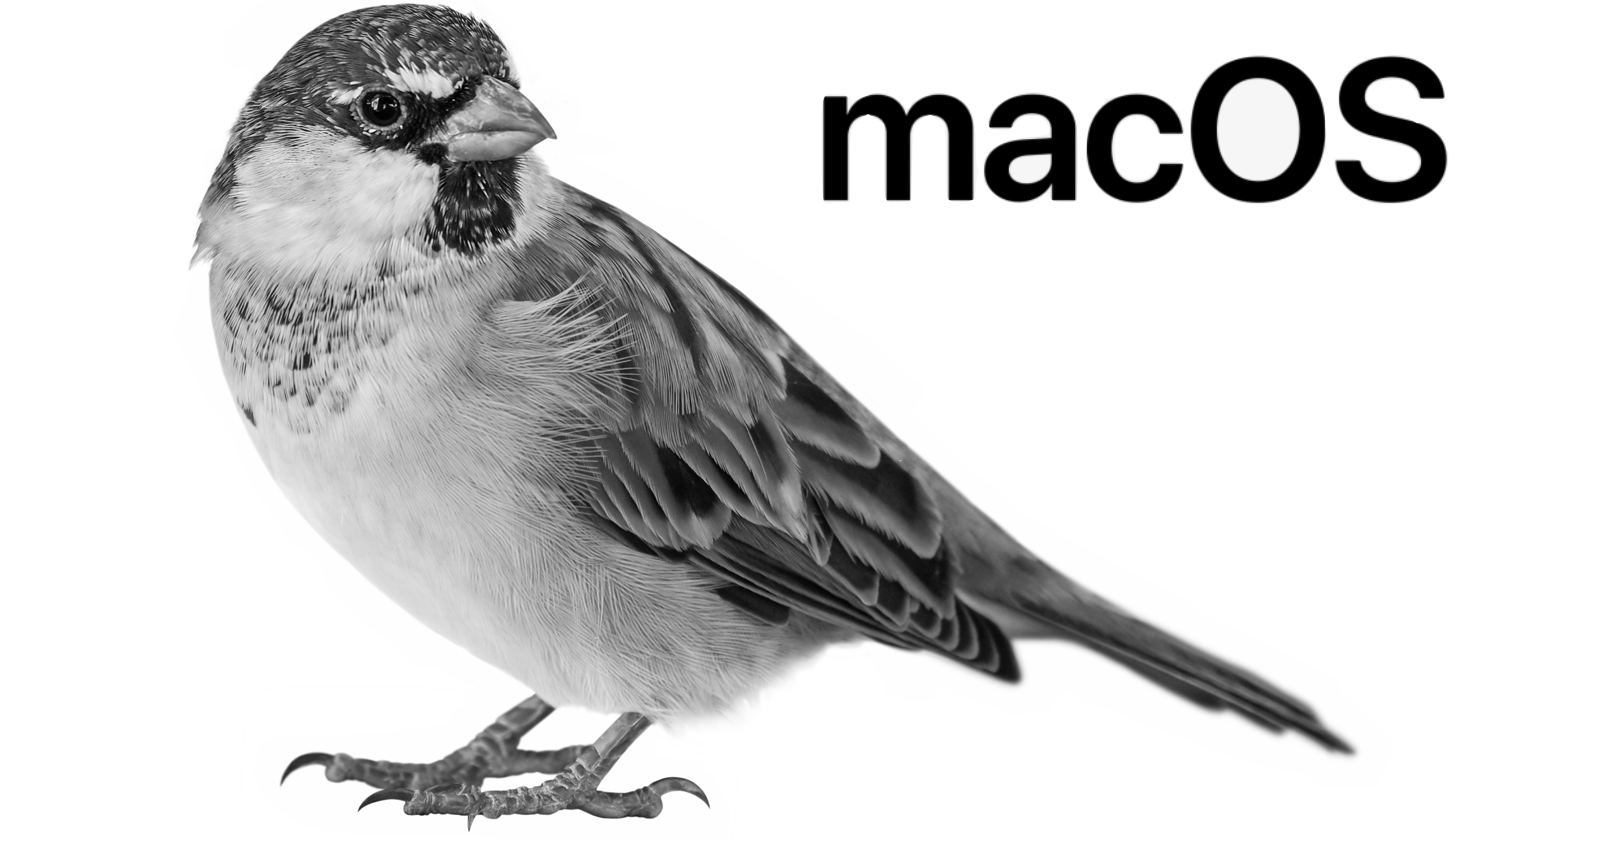 macmegasite.com - Silver Sparrow Malware Threat Affects M1, Intel Macs : Apple World Today